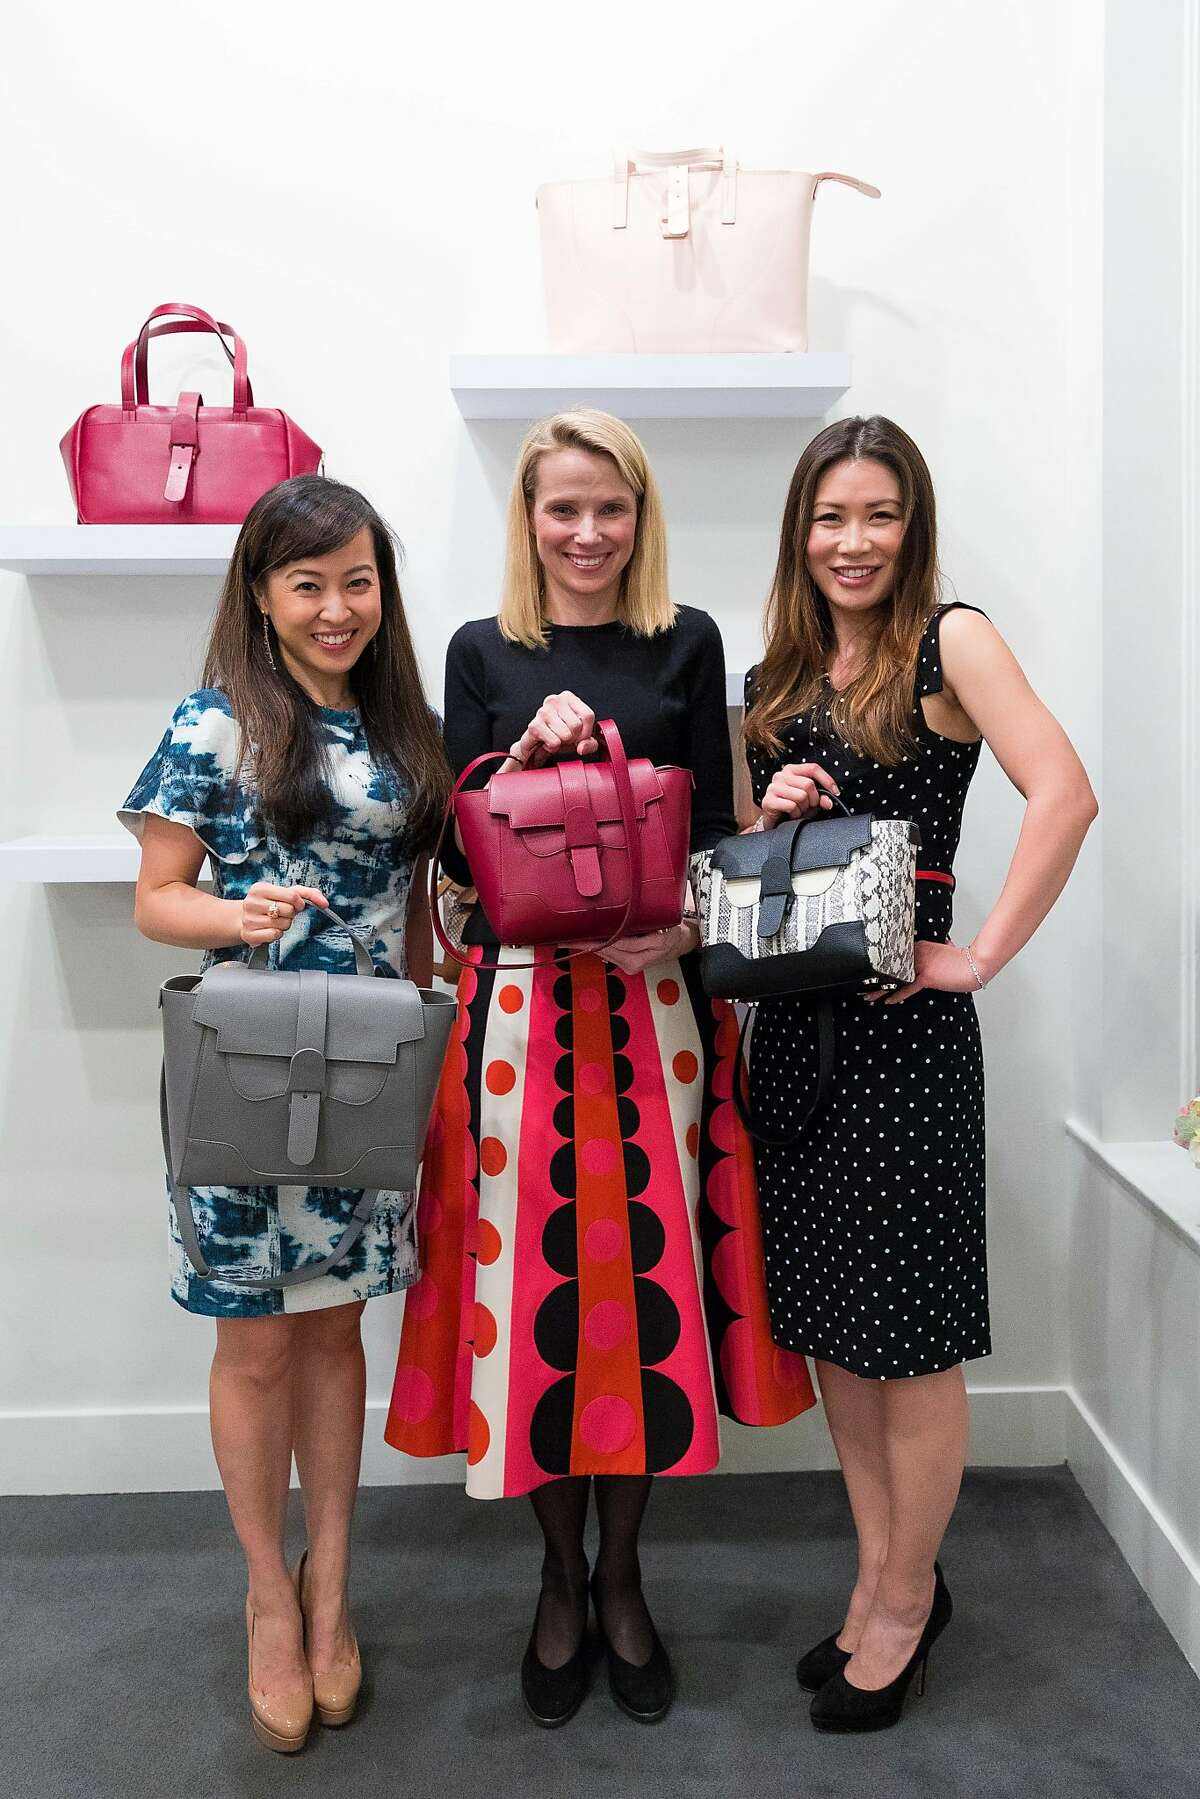 San Francisco bag company Senreve has opened a by-appointment showroom in Union Square.�Founders�Coral Chung (left) and Wendy Wen flank former Yahoo CEO Marissa Mayer, who attended the opening party.